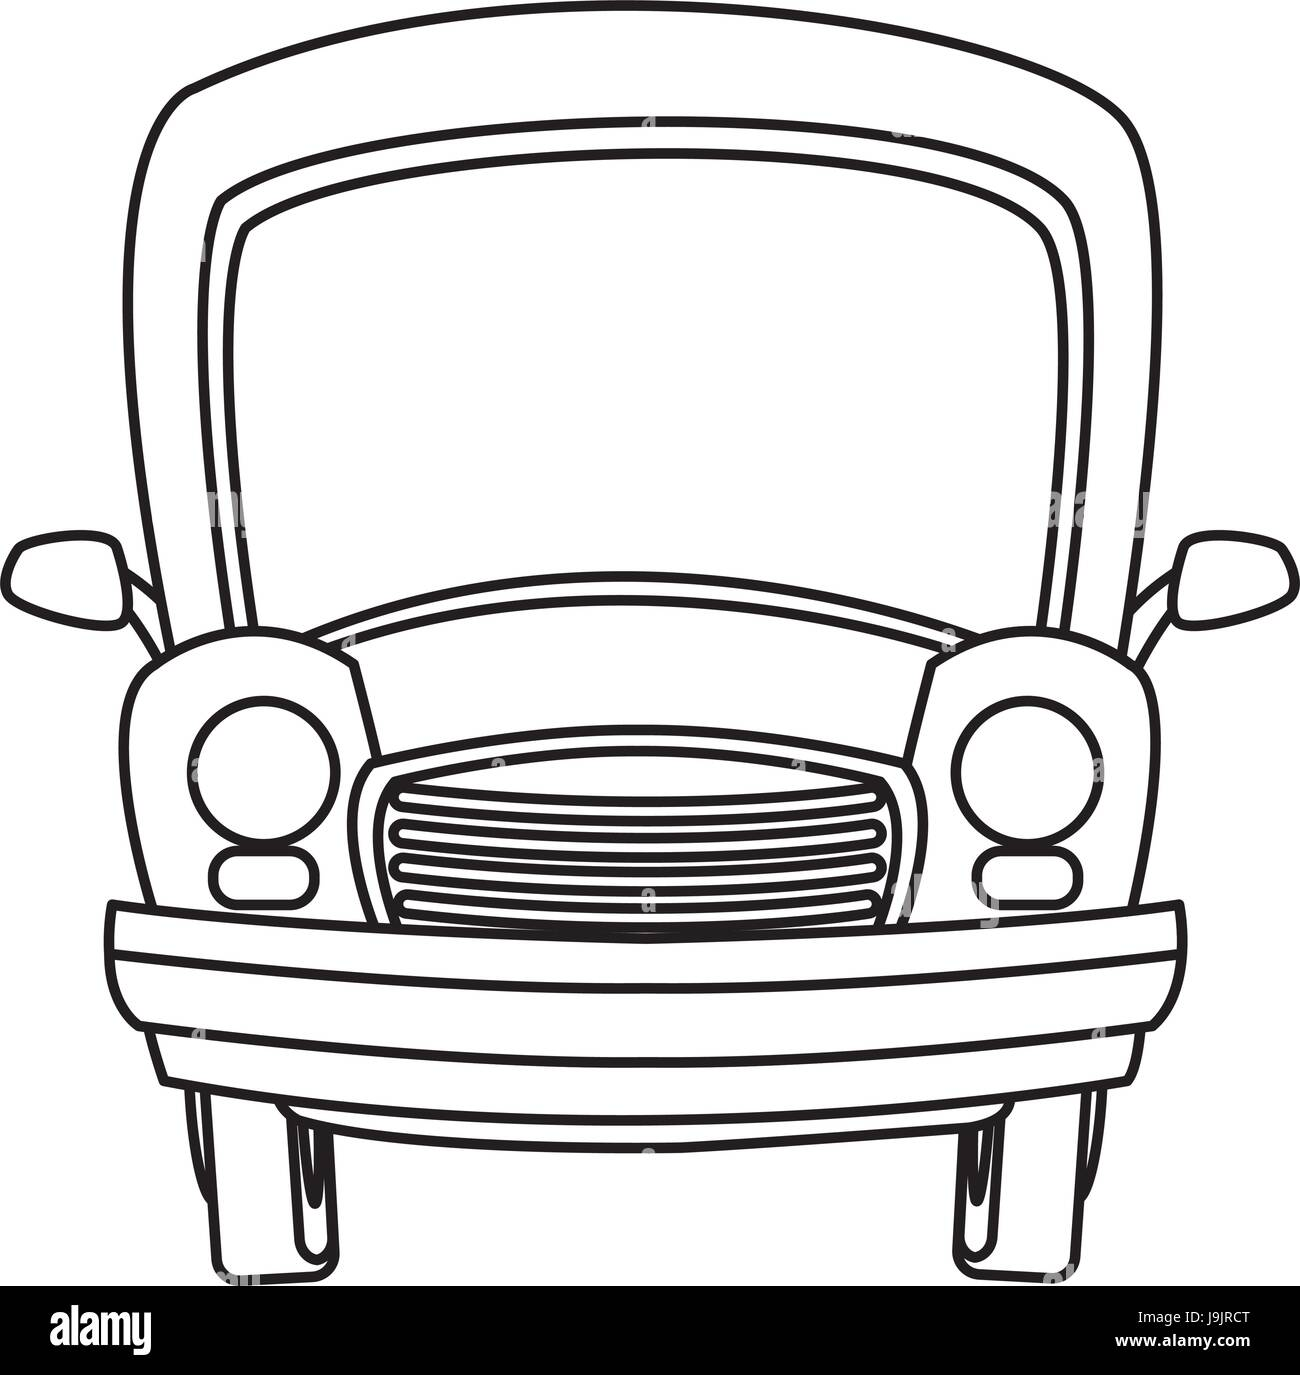 Cartoon Car Stockfotos & Cartoon Car Bilder - Seite 3 - Alamy